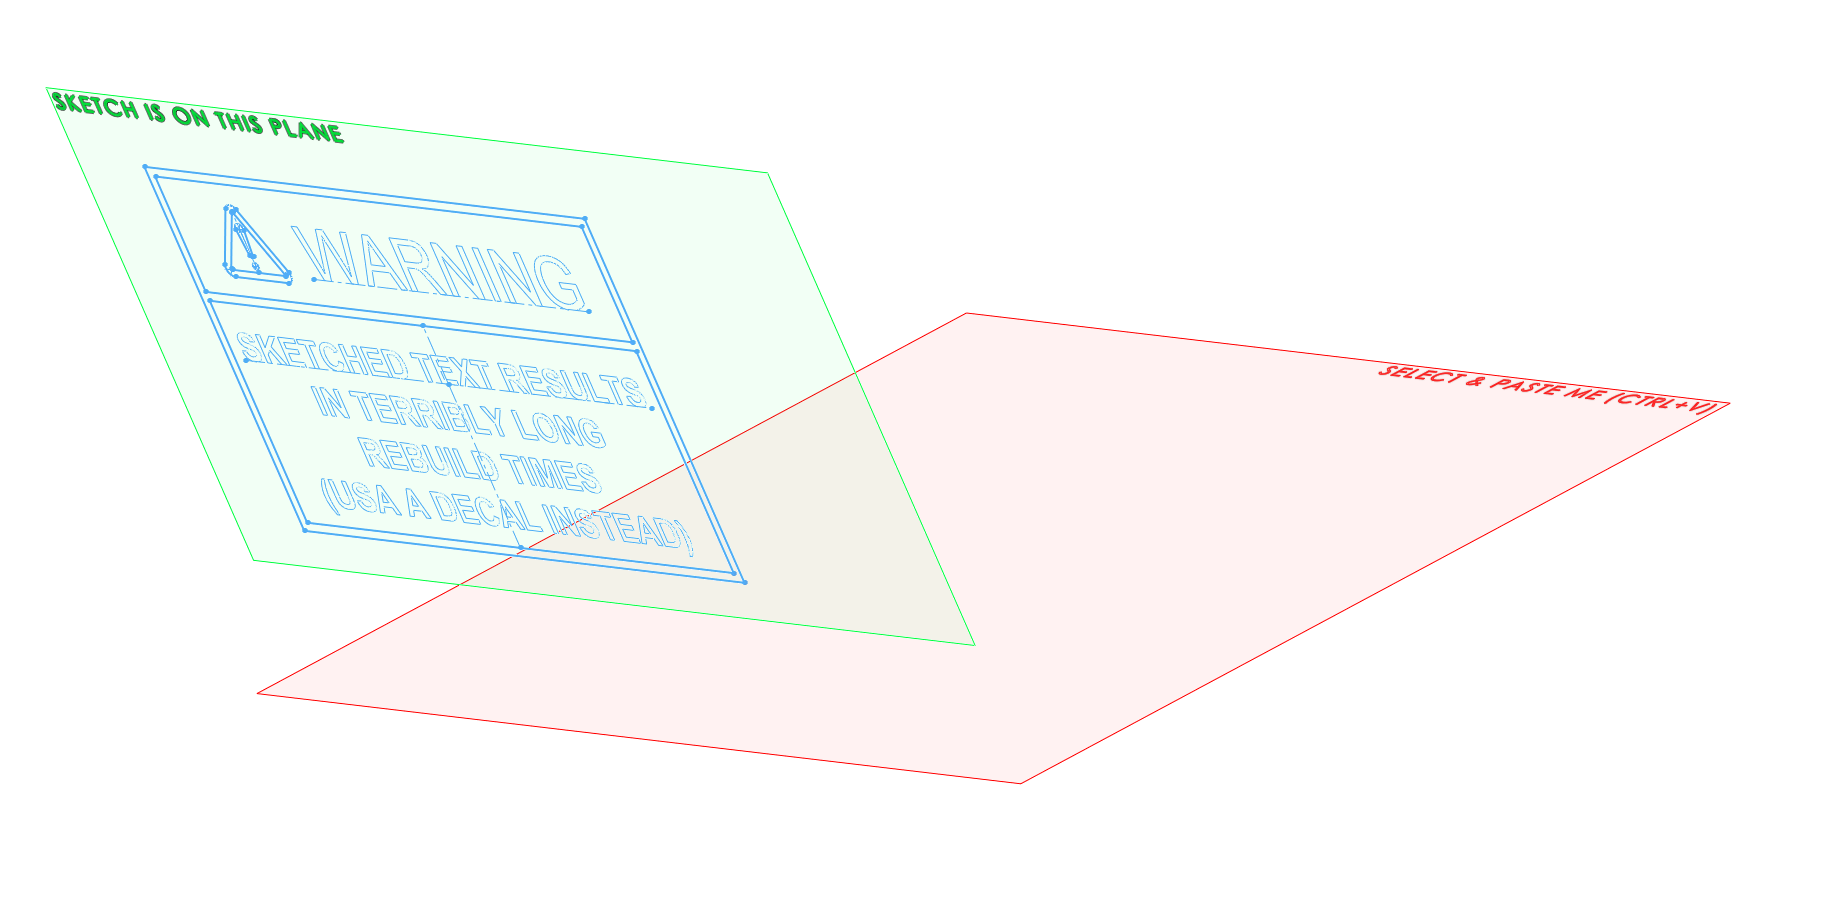 Copy Sketch Plane is different